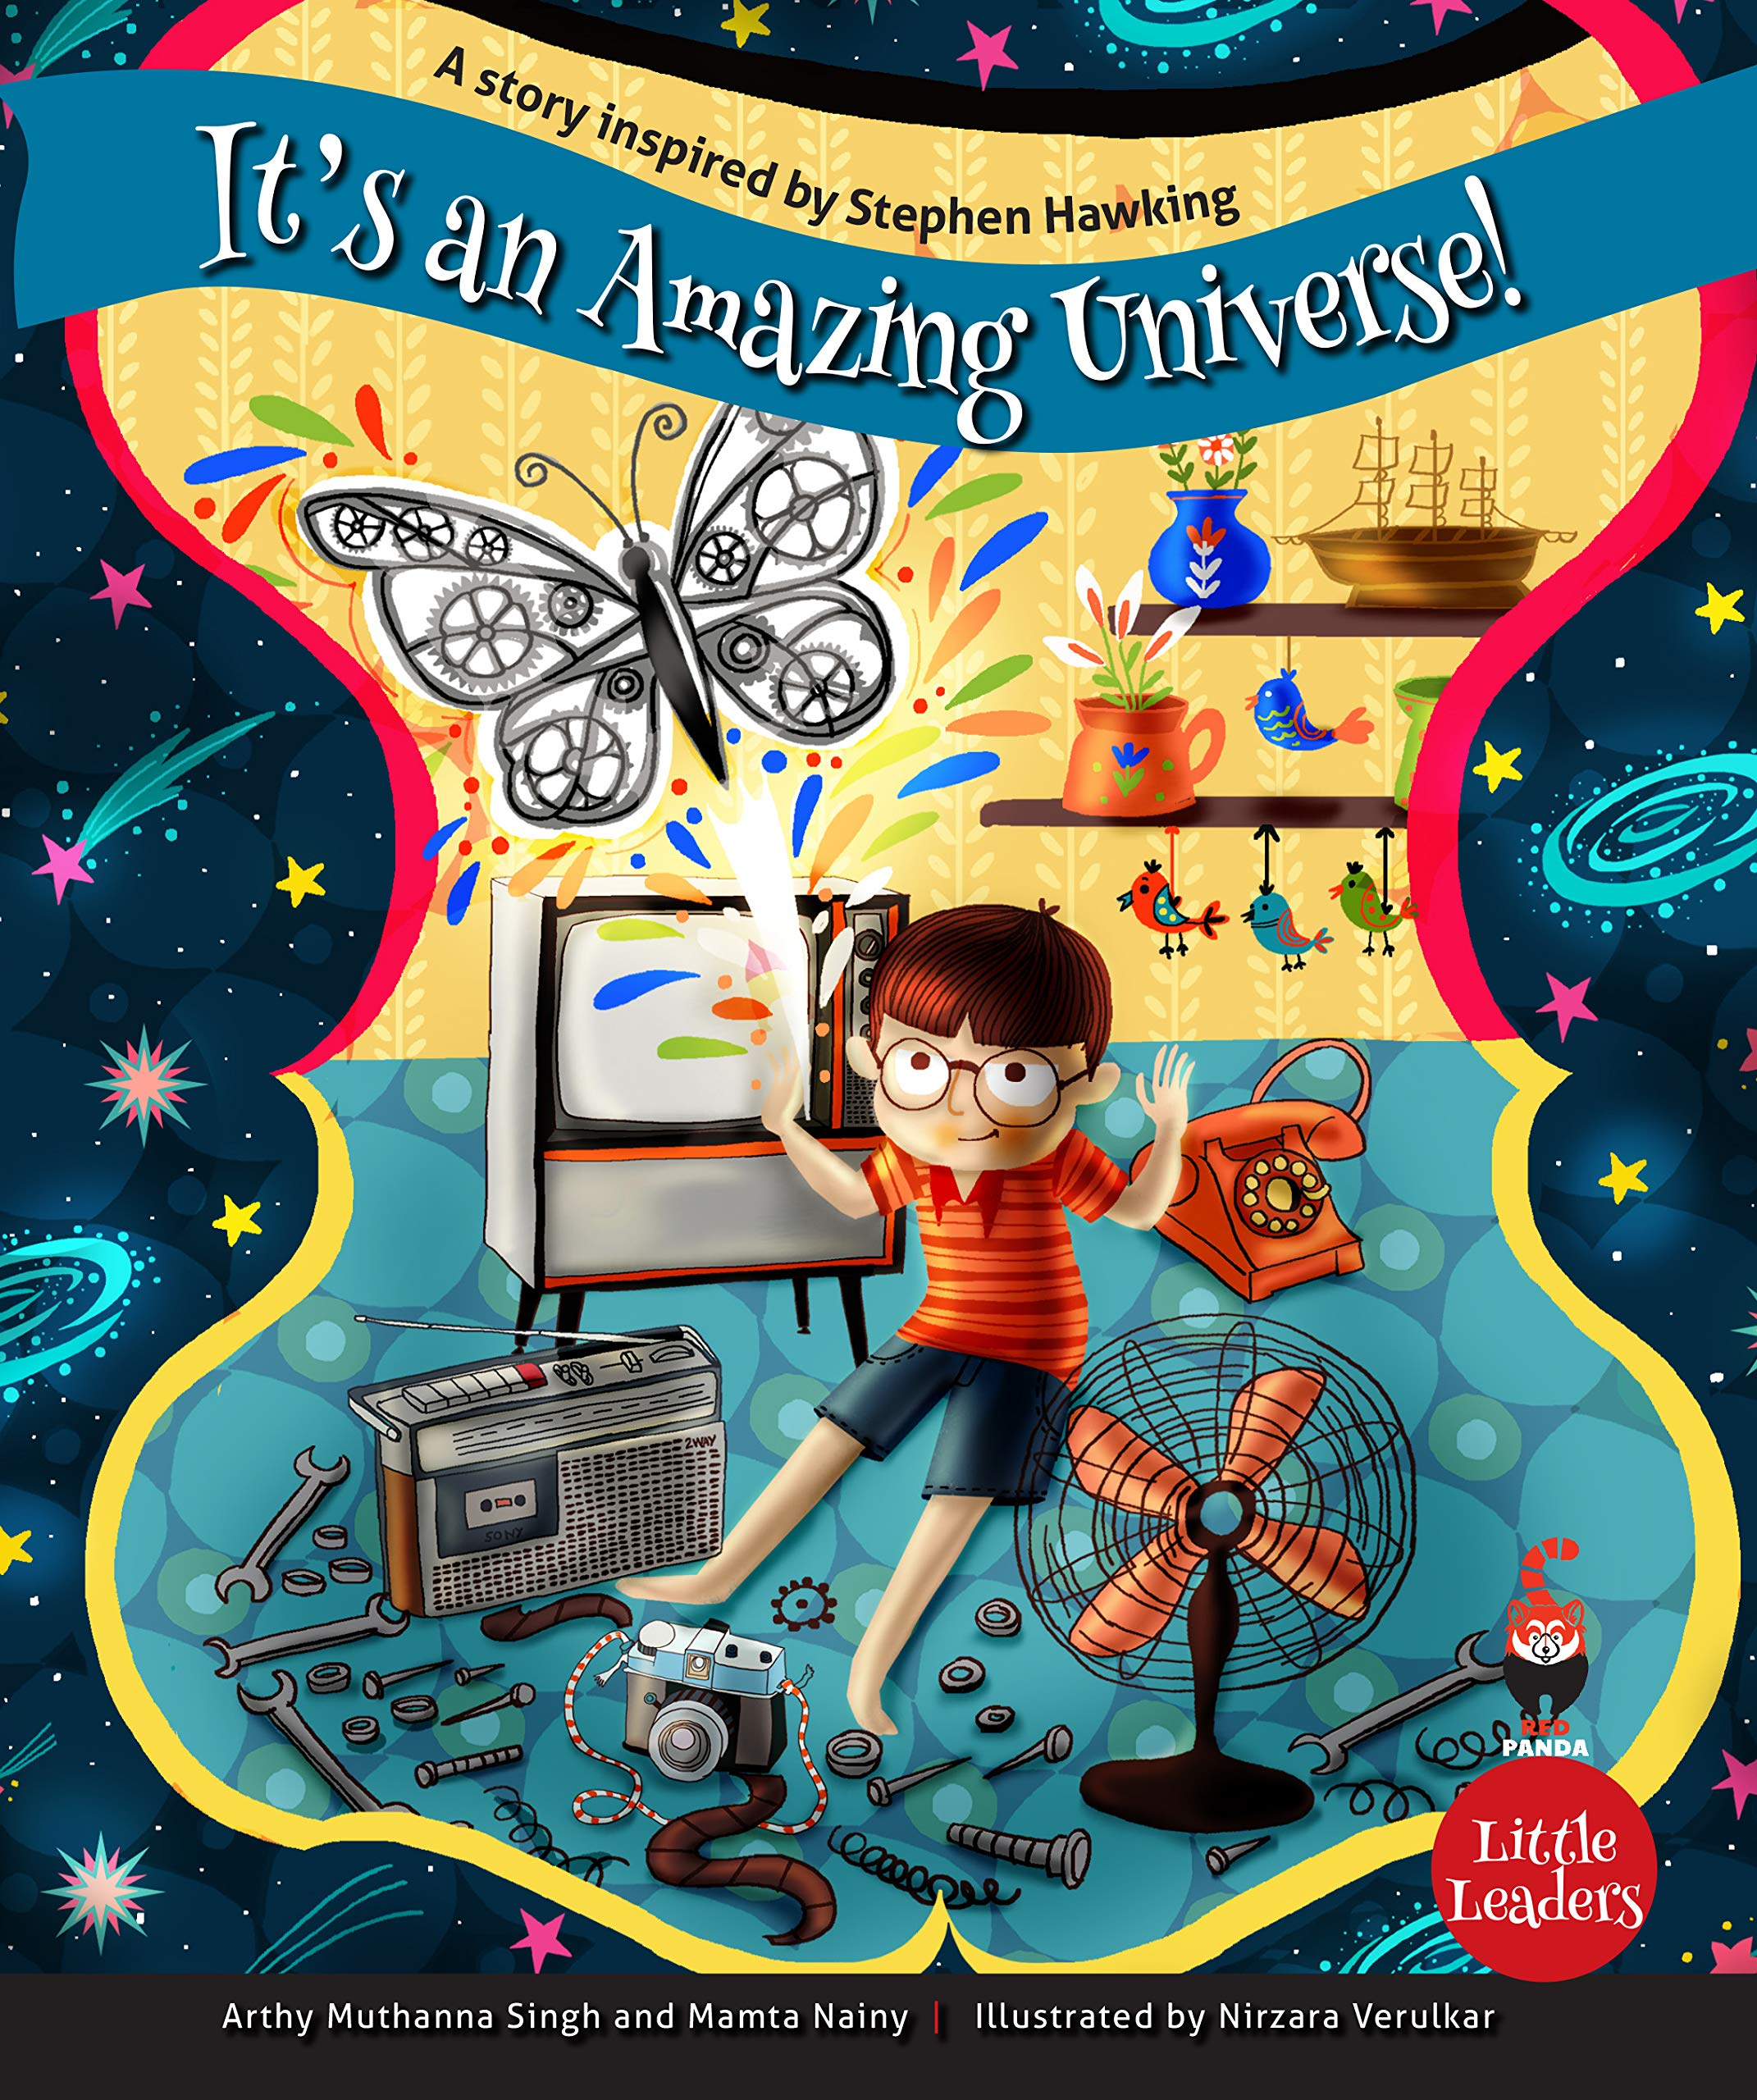 Little Leaders : It's An Amazing Universe! – A Story Inspired By Stephen Hawking